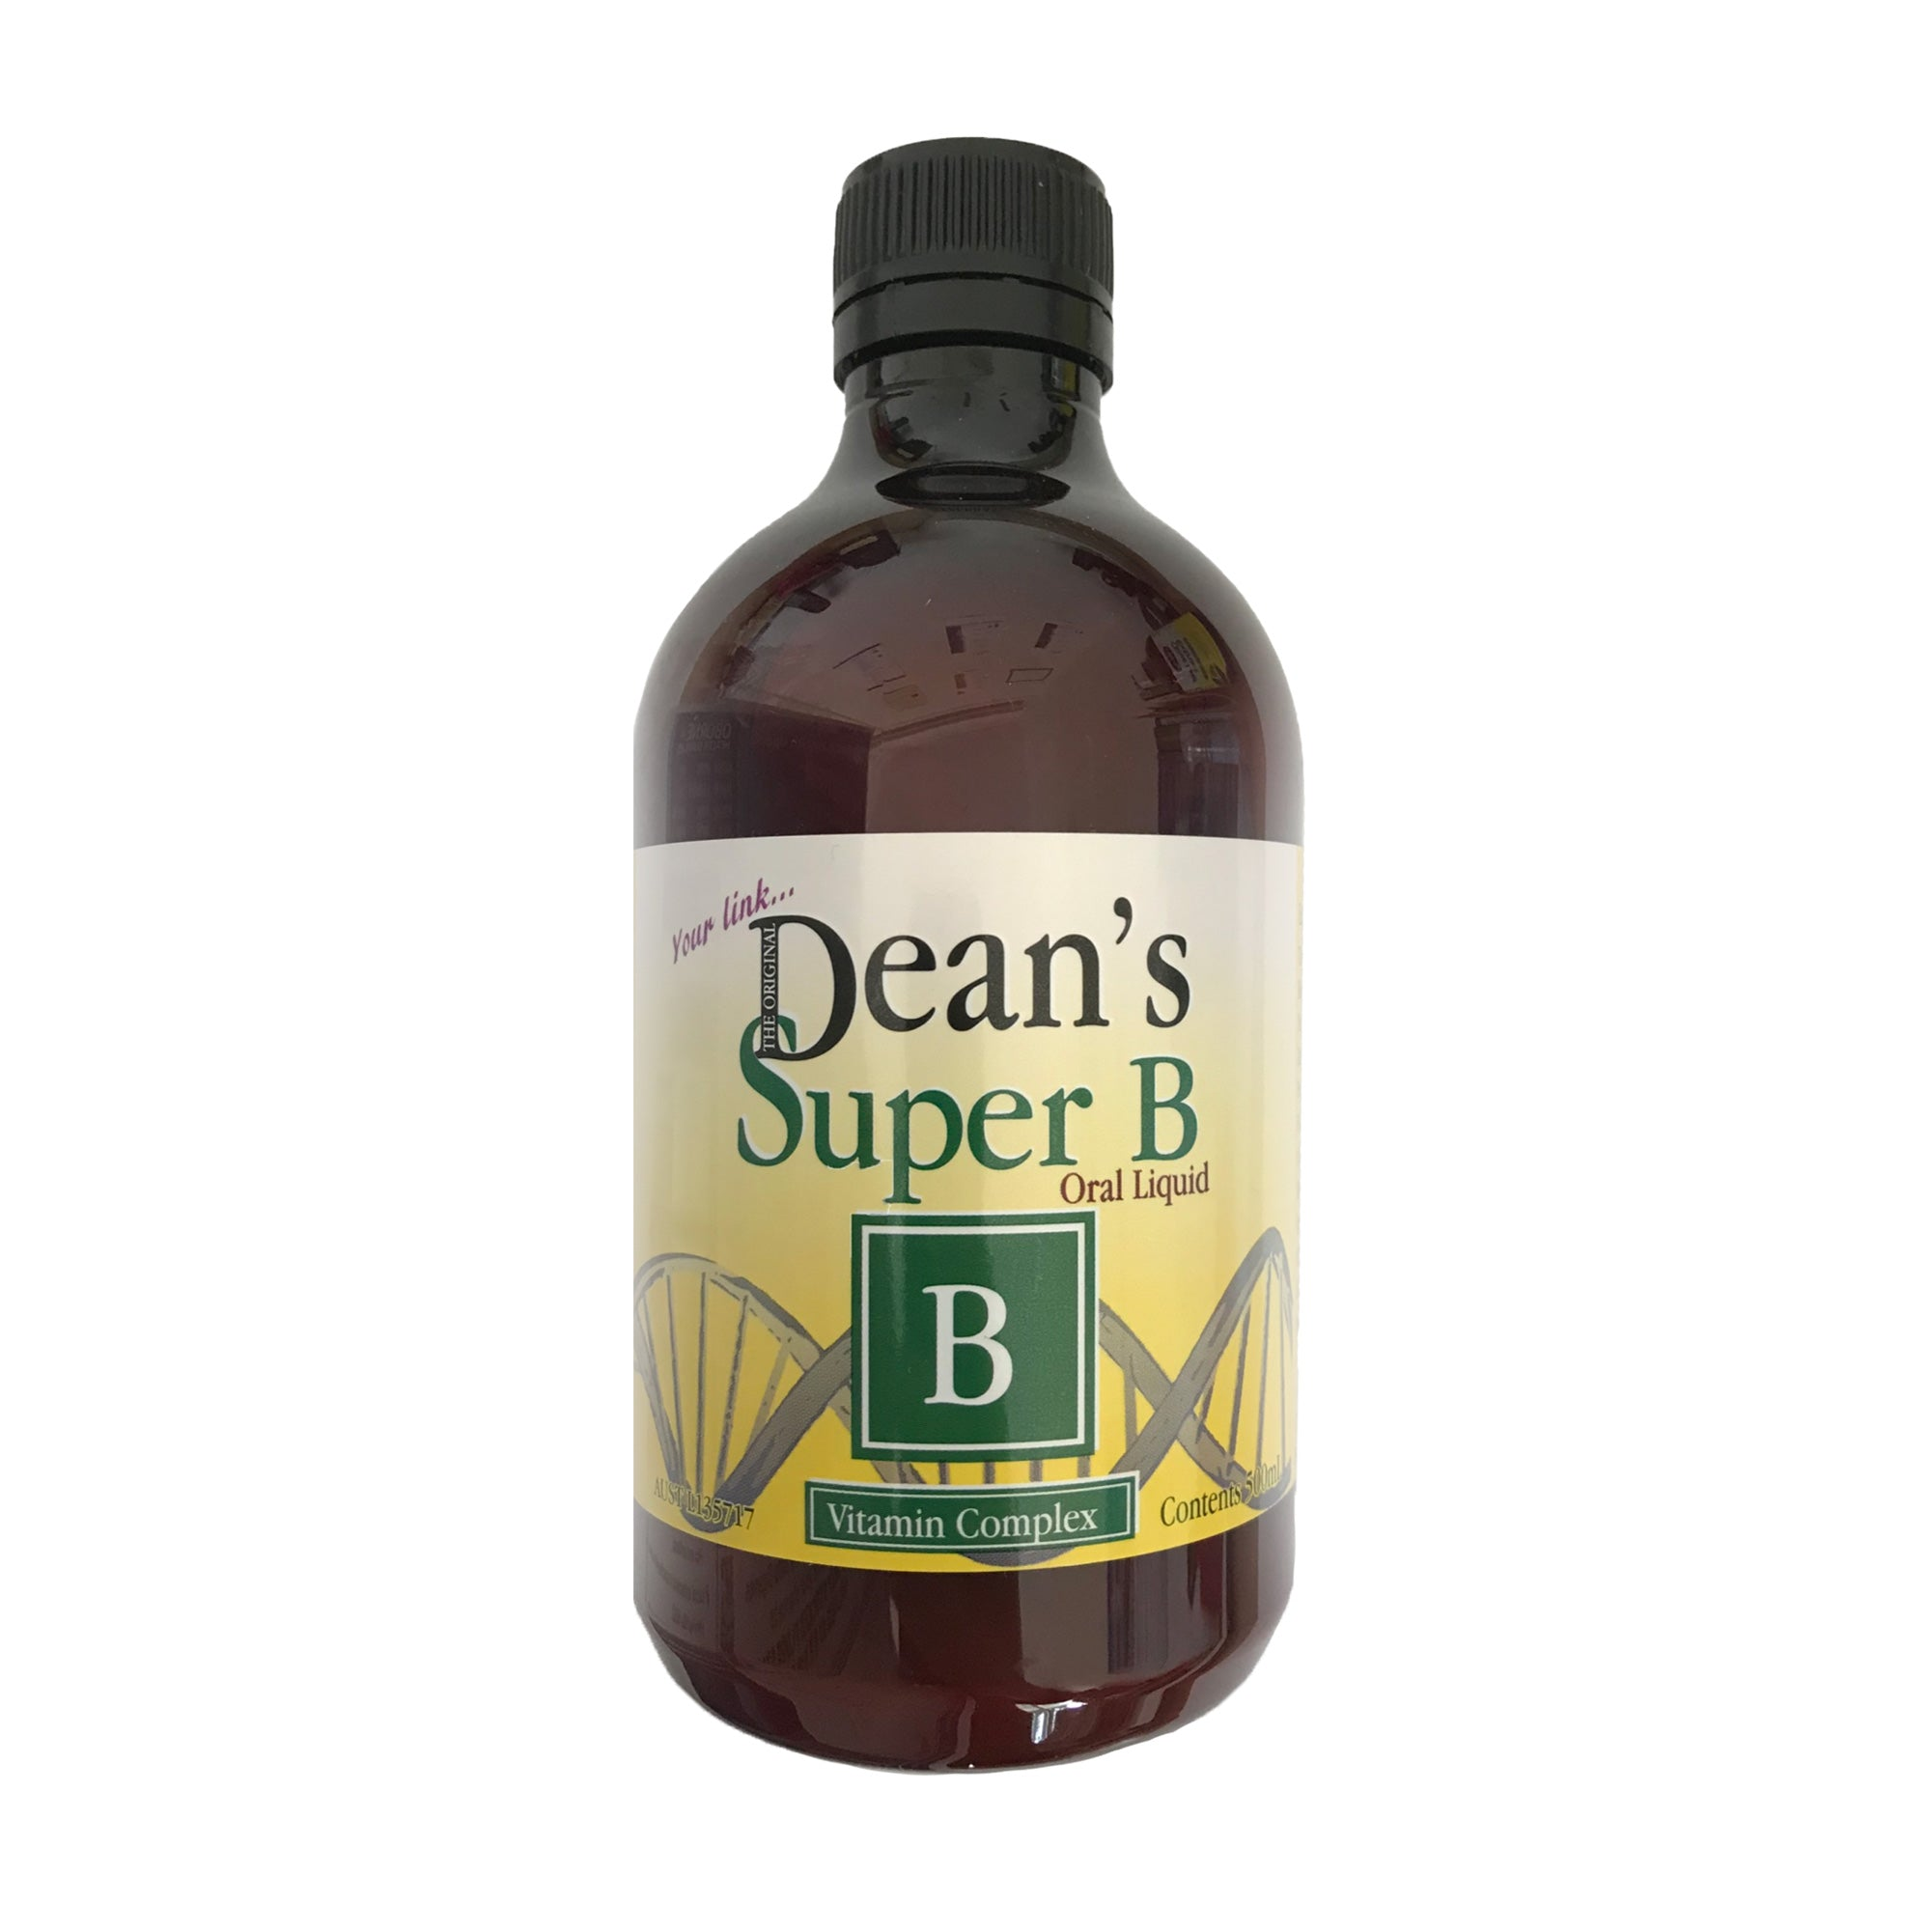 Dean's Super B Oral Liquid